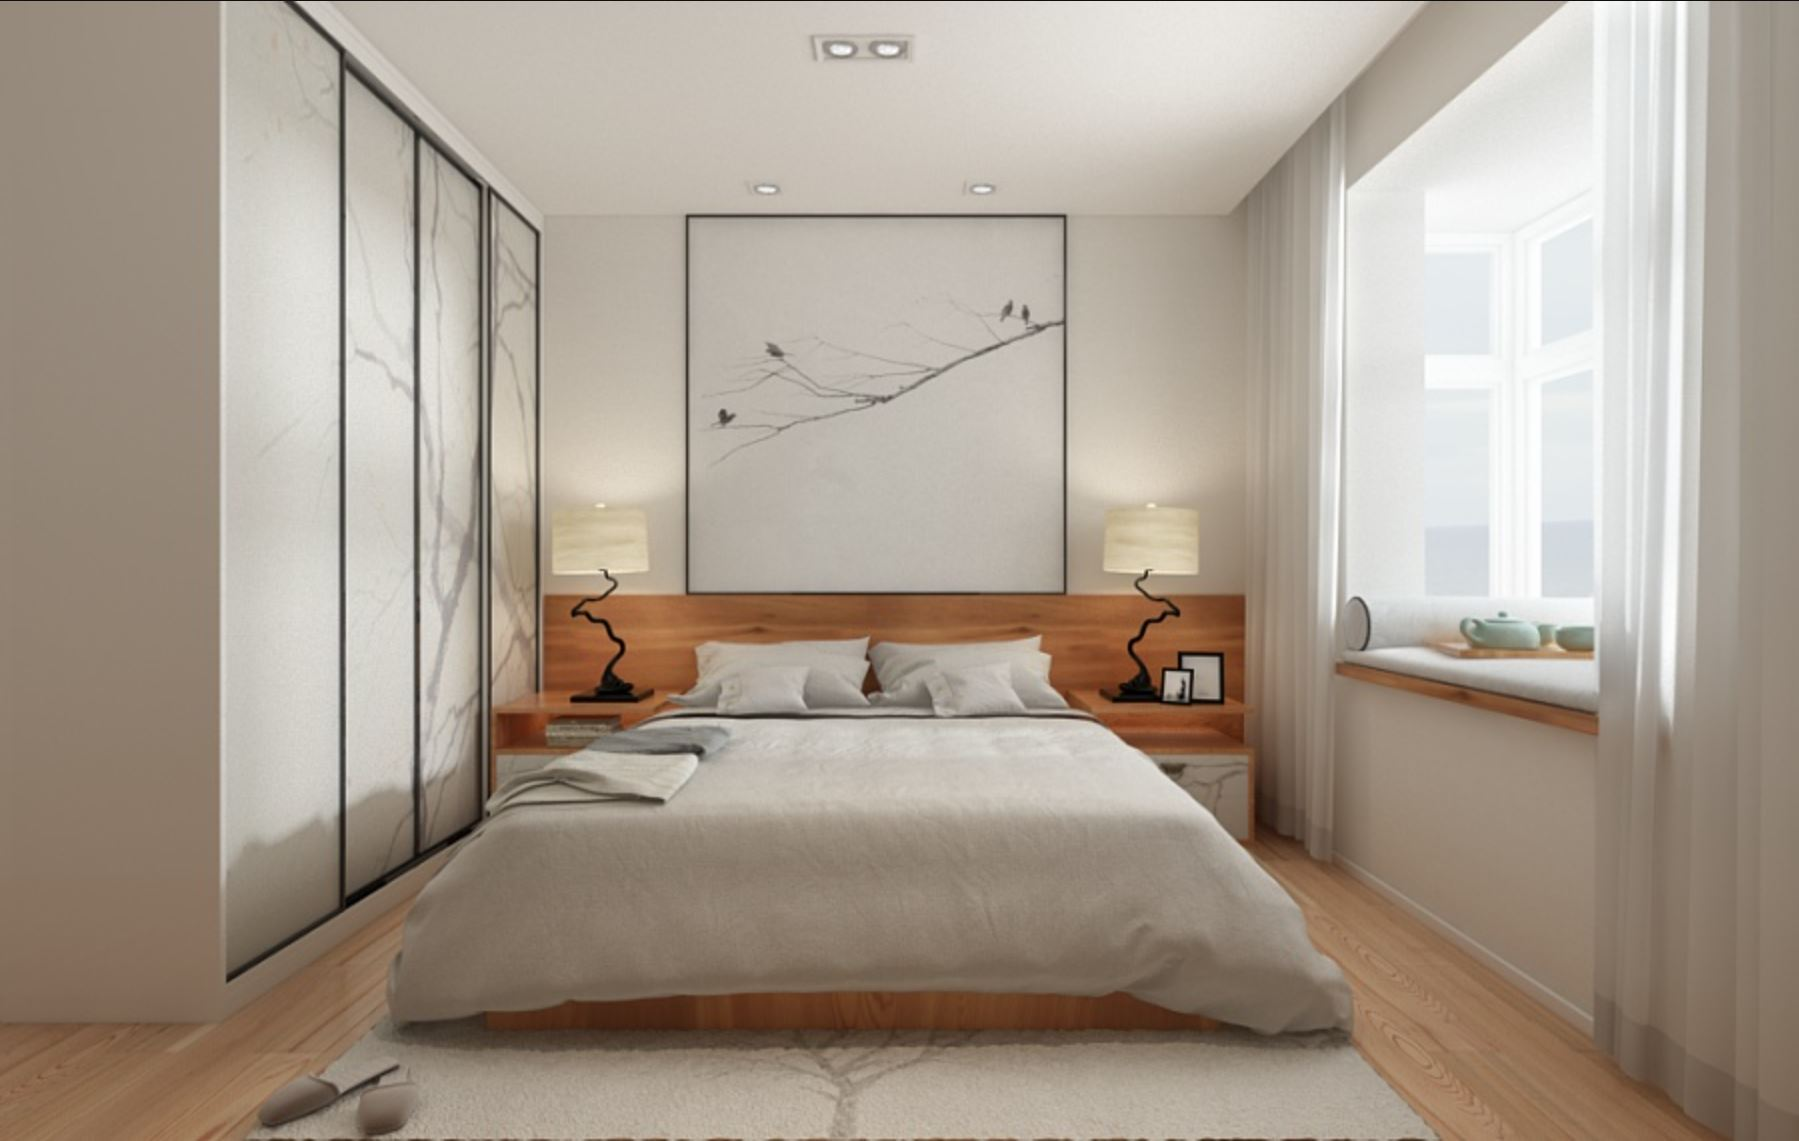 Bedroom with tree inspired decor in the form of lamps, rug design, cupboard design, and wall portrait